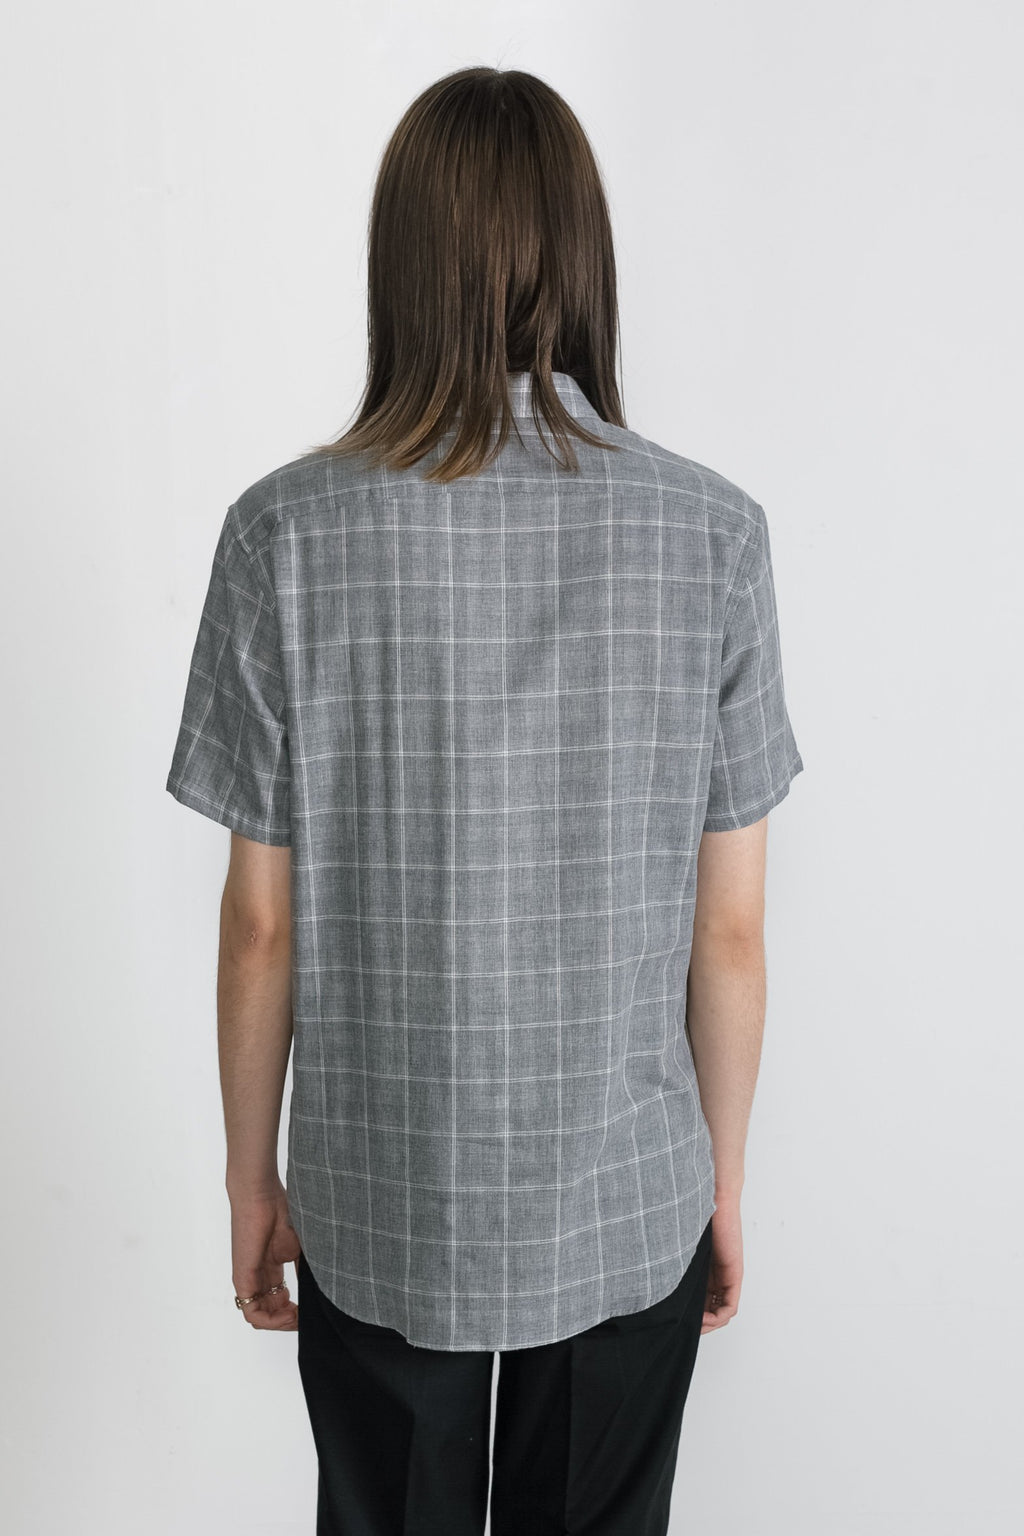 Japanese Double Face Plaid in Grey 006